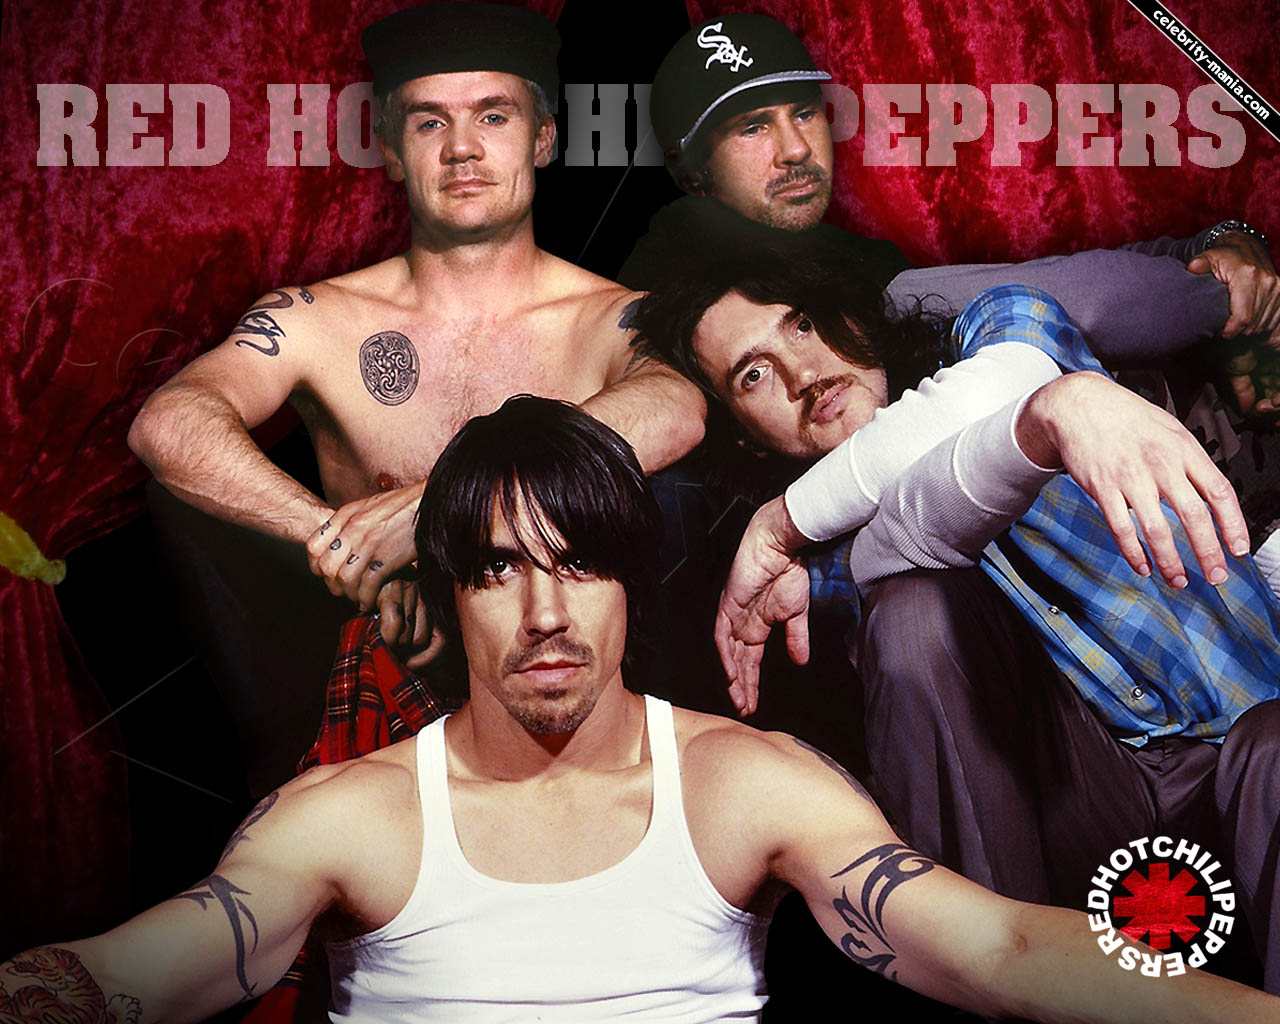 http://2.bp.blogspot.com/-37q_ONZ26f0/UDOIlqtbEcI/AAAAAAAACBI/6St2fYT6wjA/s1600/music_red_a_chili_peppers_john_frusciante_flea_bands_desktop_1280x1024_wallpaper-278271.jpg